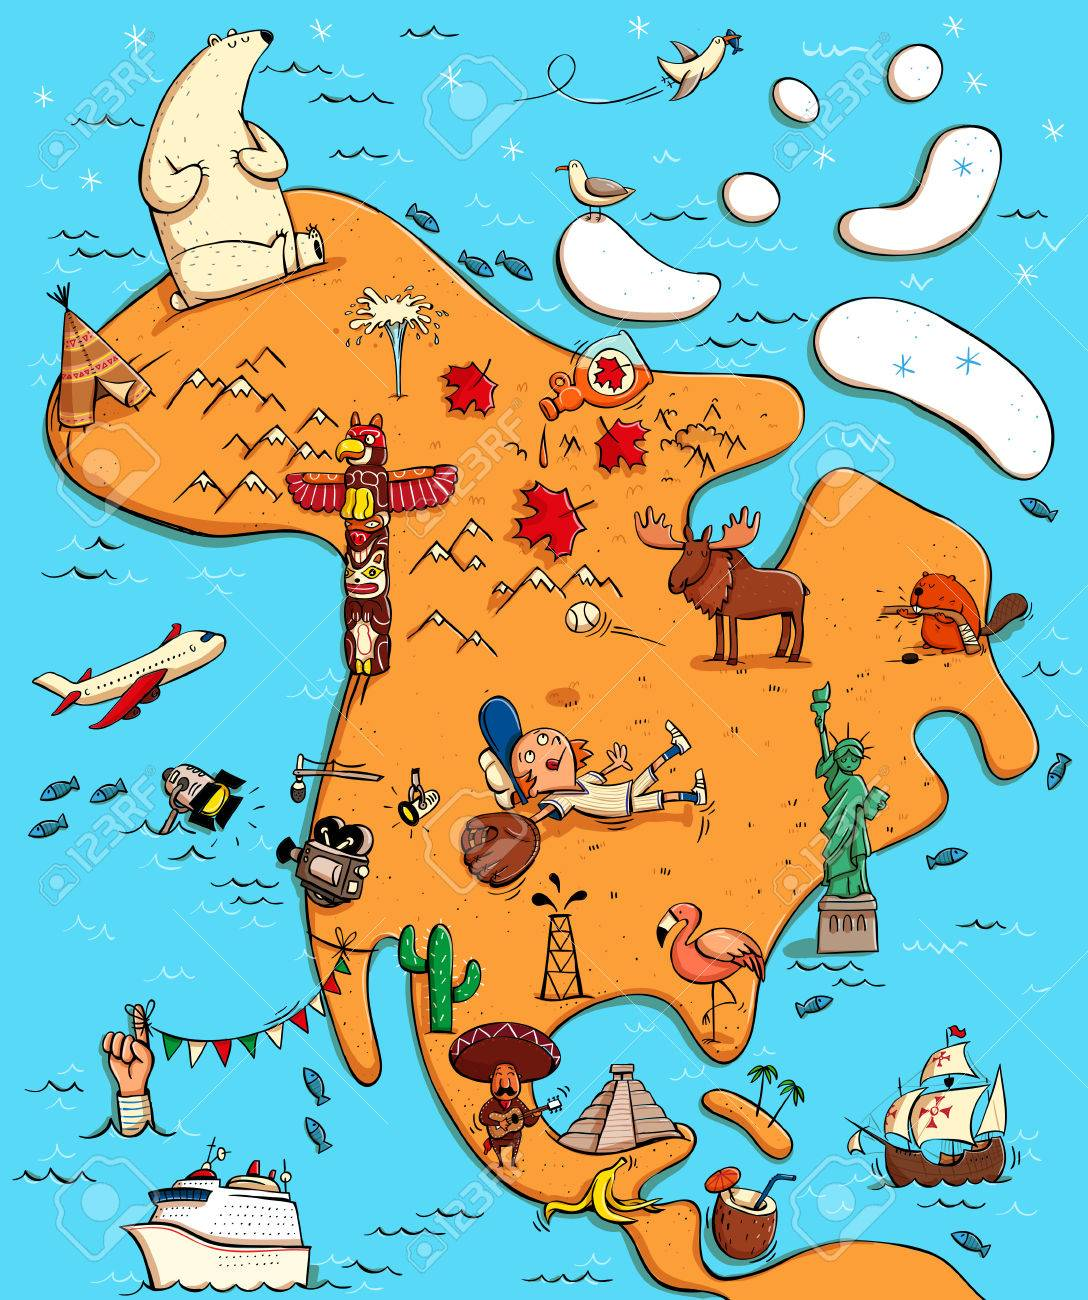 Illustrated Map Of North America With Funny And Typical Objects